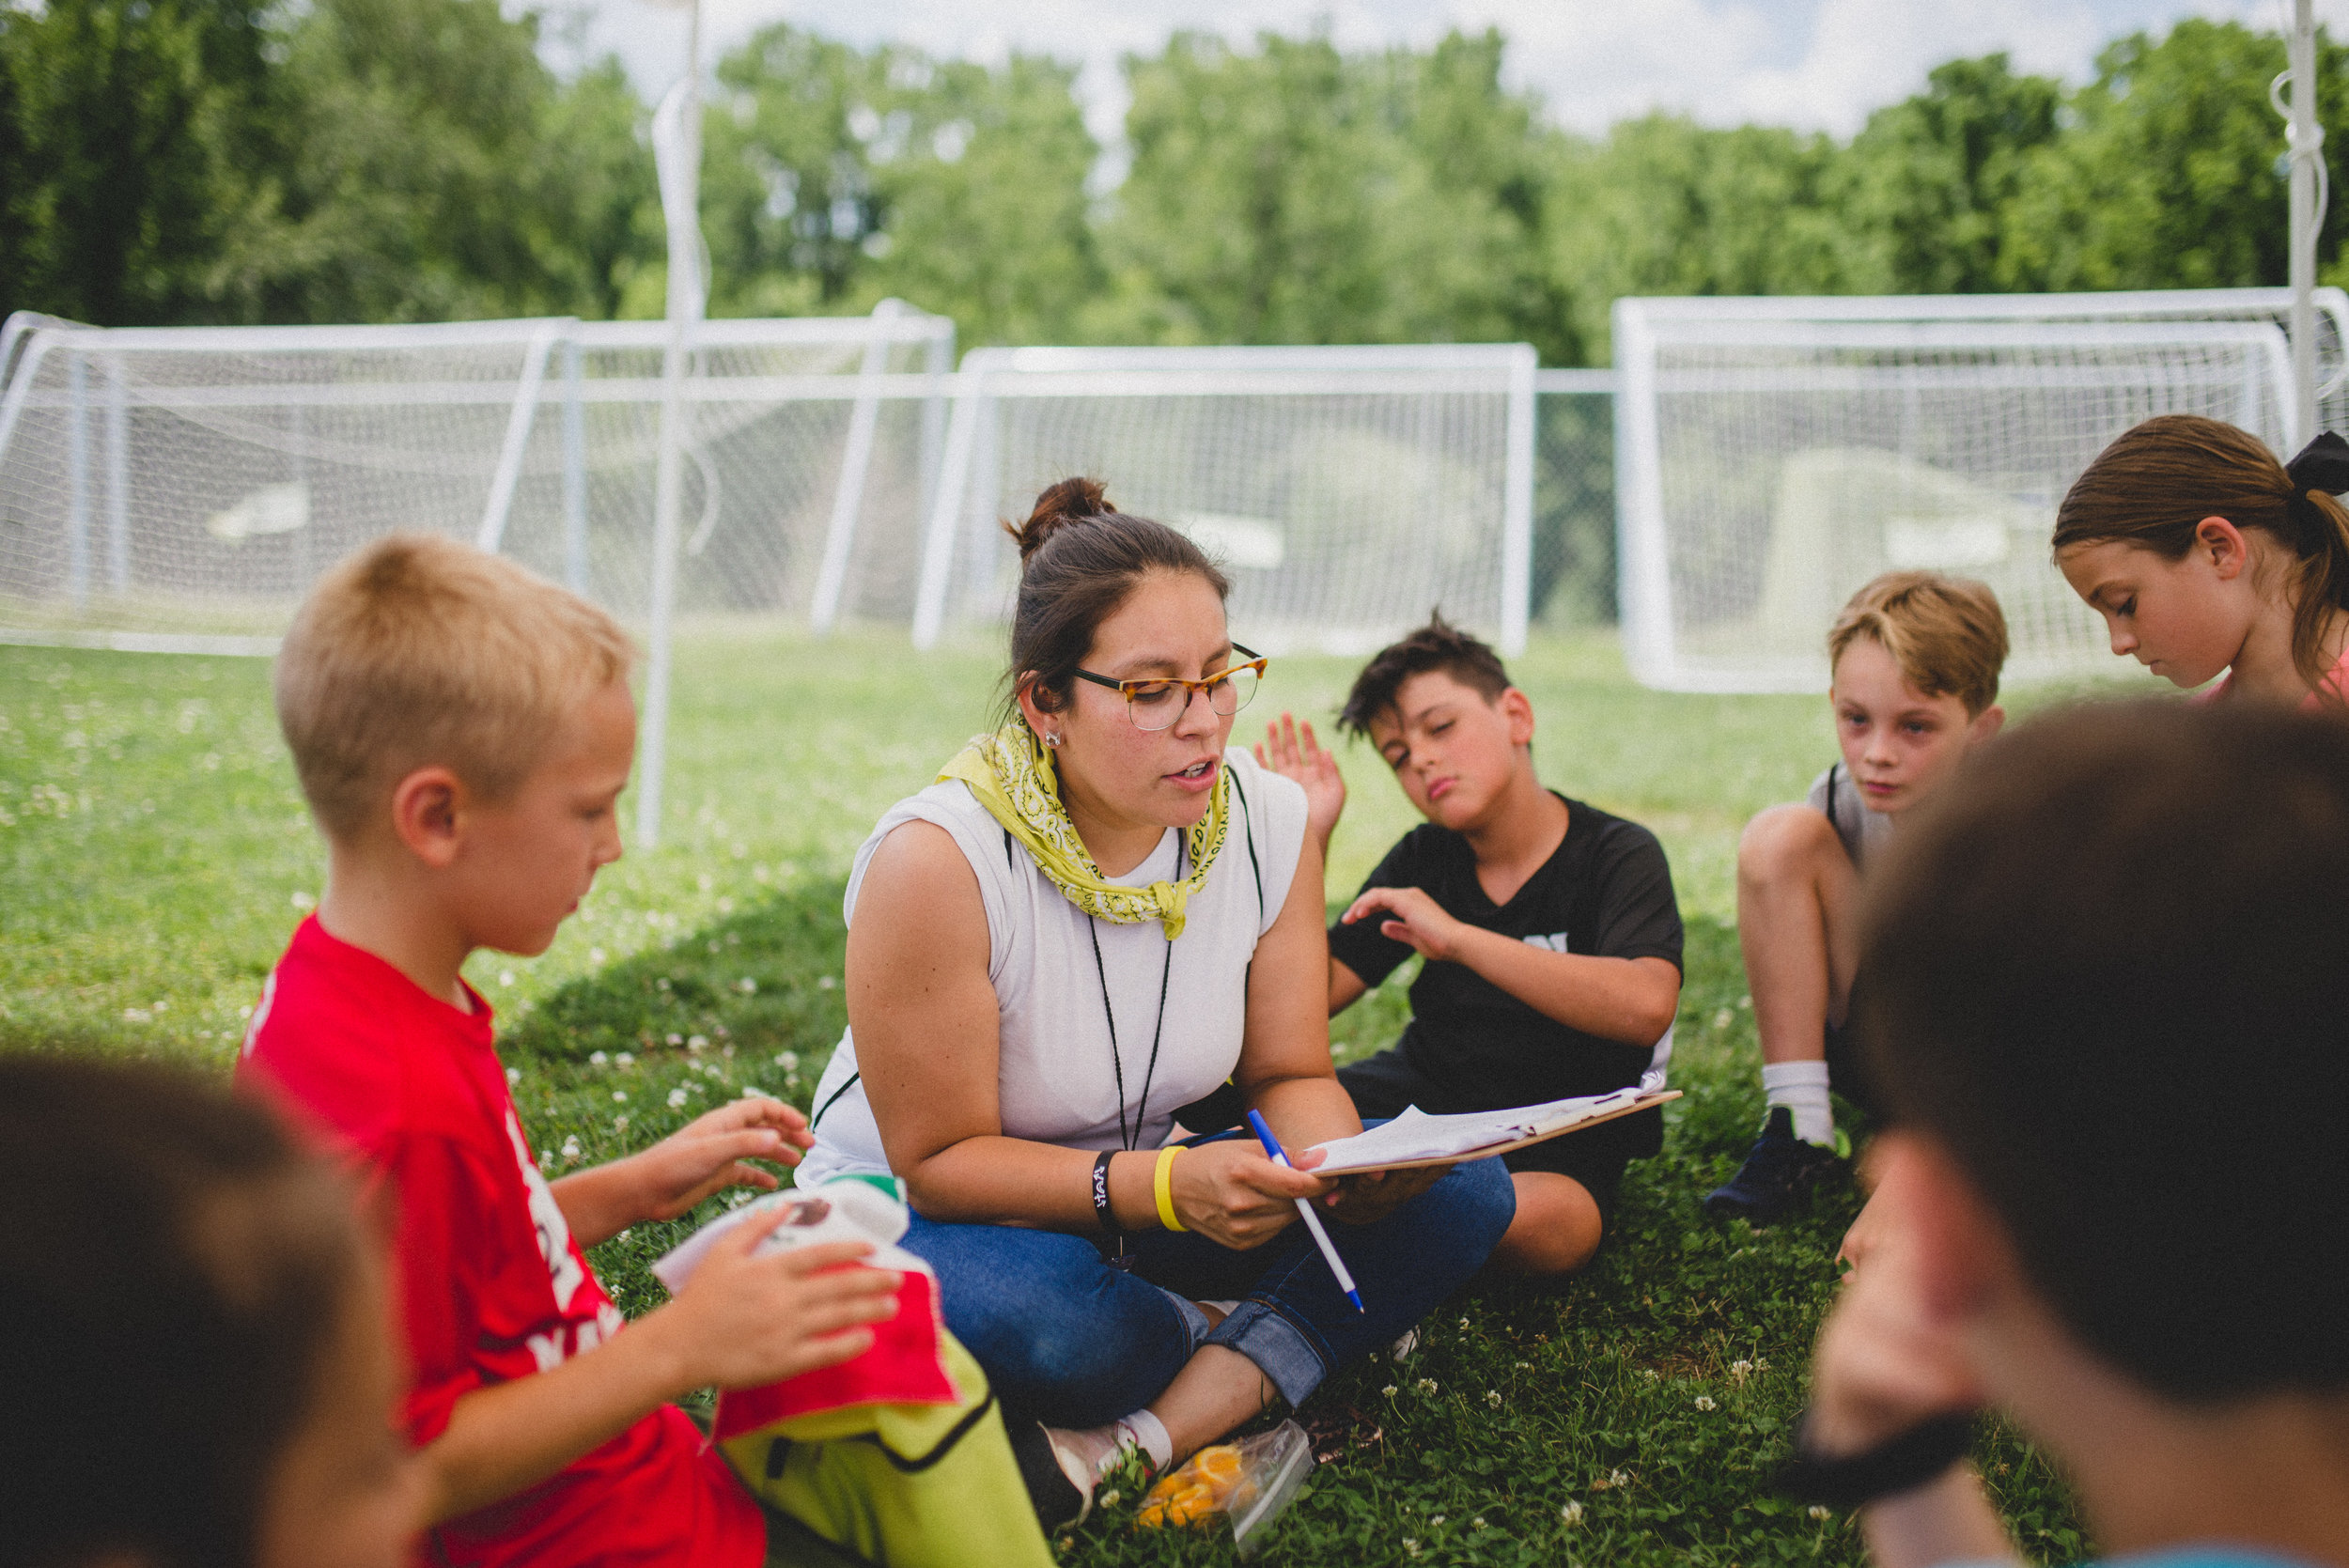 Blanca, a counselor with Camp Skillz, loves being alongside the kids during the day to encourage them in their competitions and challenges.